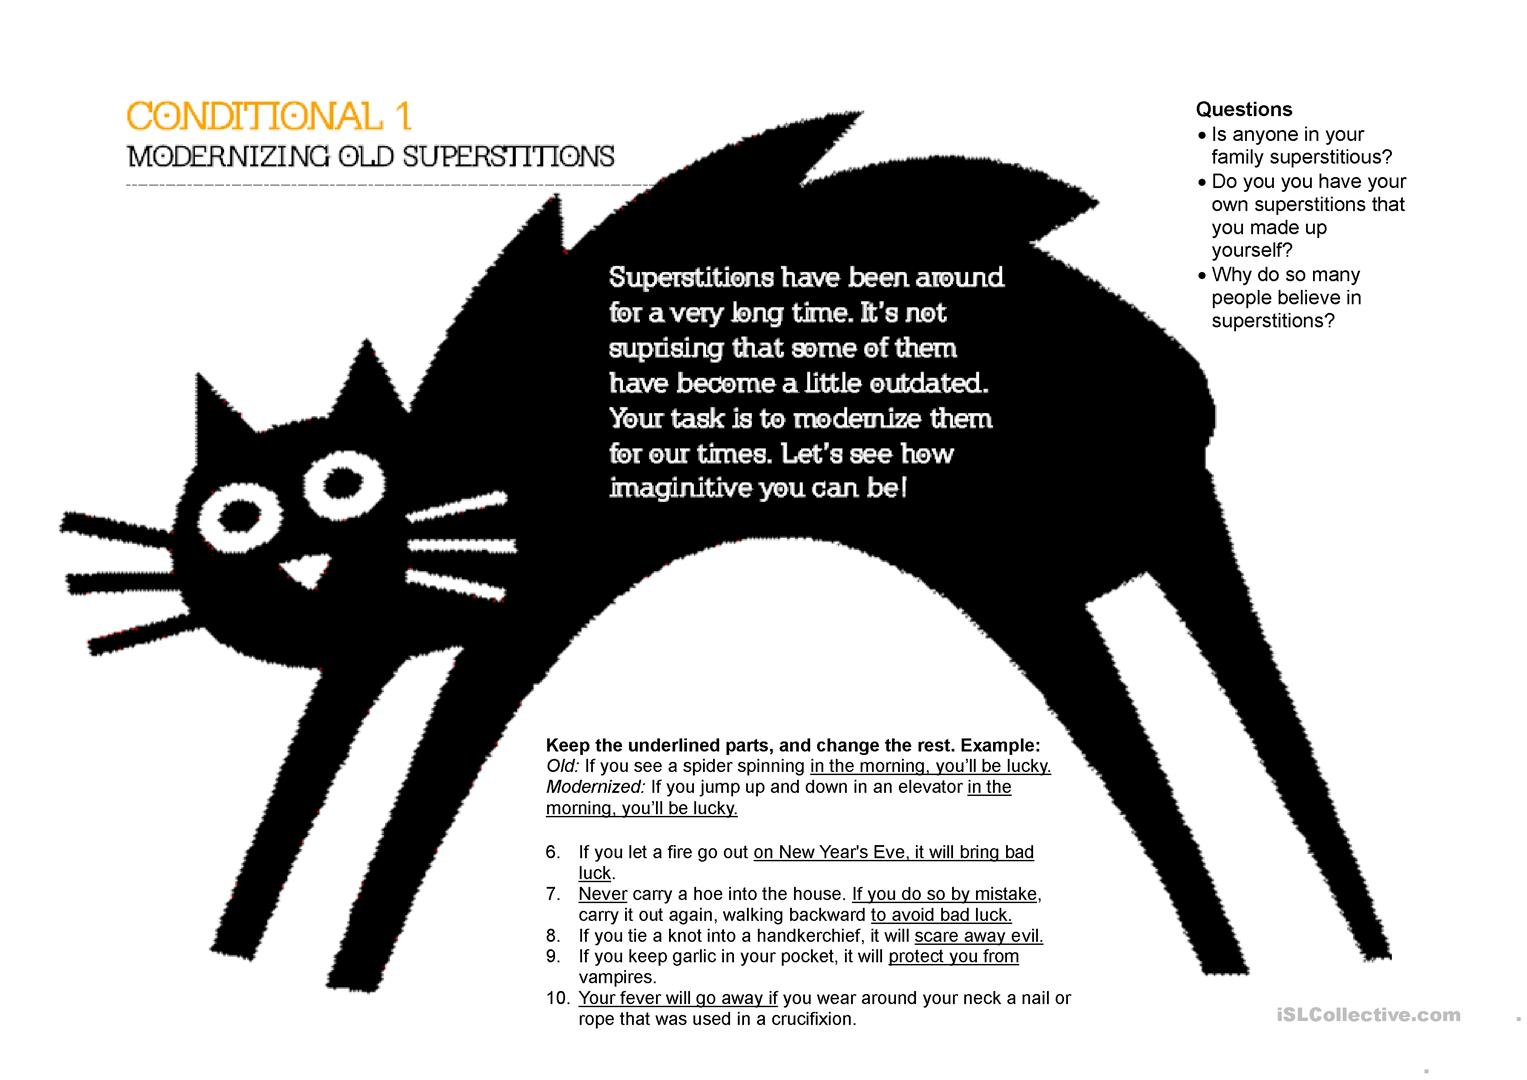 Modernizing Old Superstitions Conditional 1